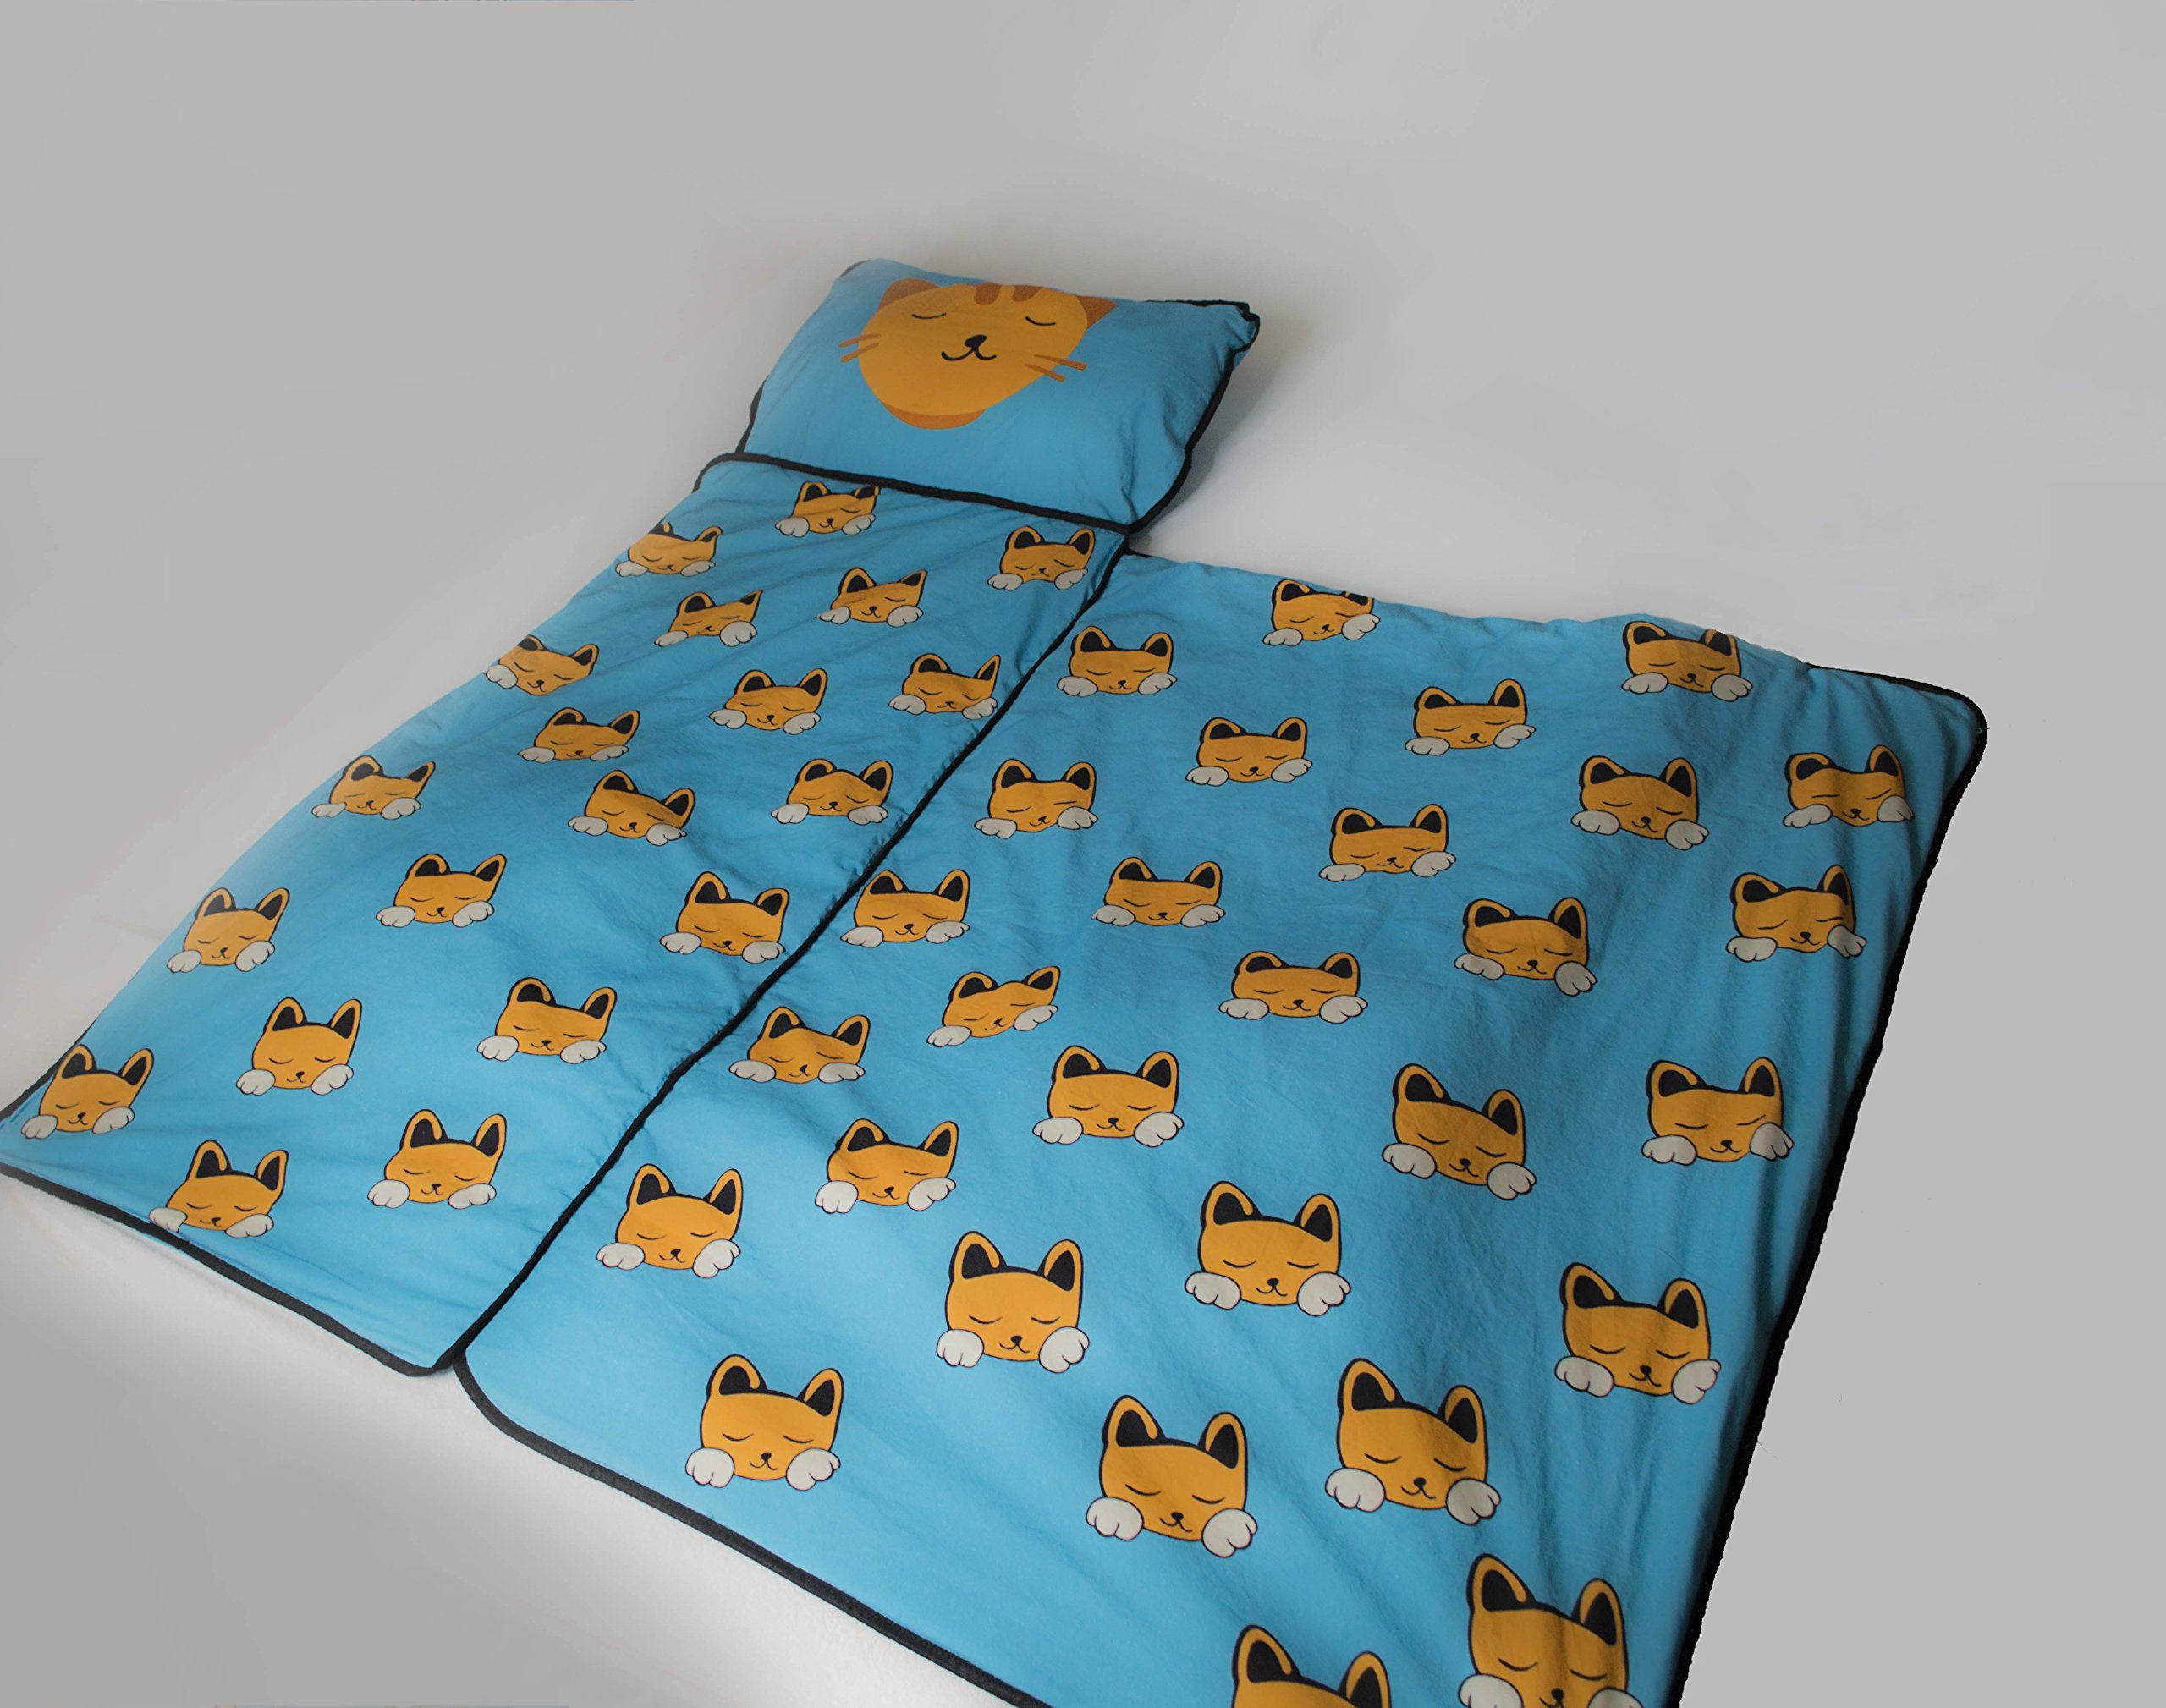 Cat Nap Mat For Toddlers Indoor Outdoor Mat Ocean Blue Built In Blanket For Babies And Toddlers You Can Find Out More Details Cat Nap Nap Mat Blue Ocean